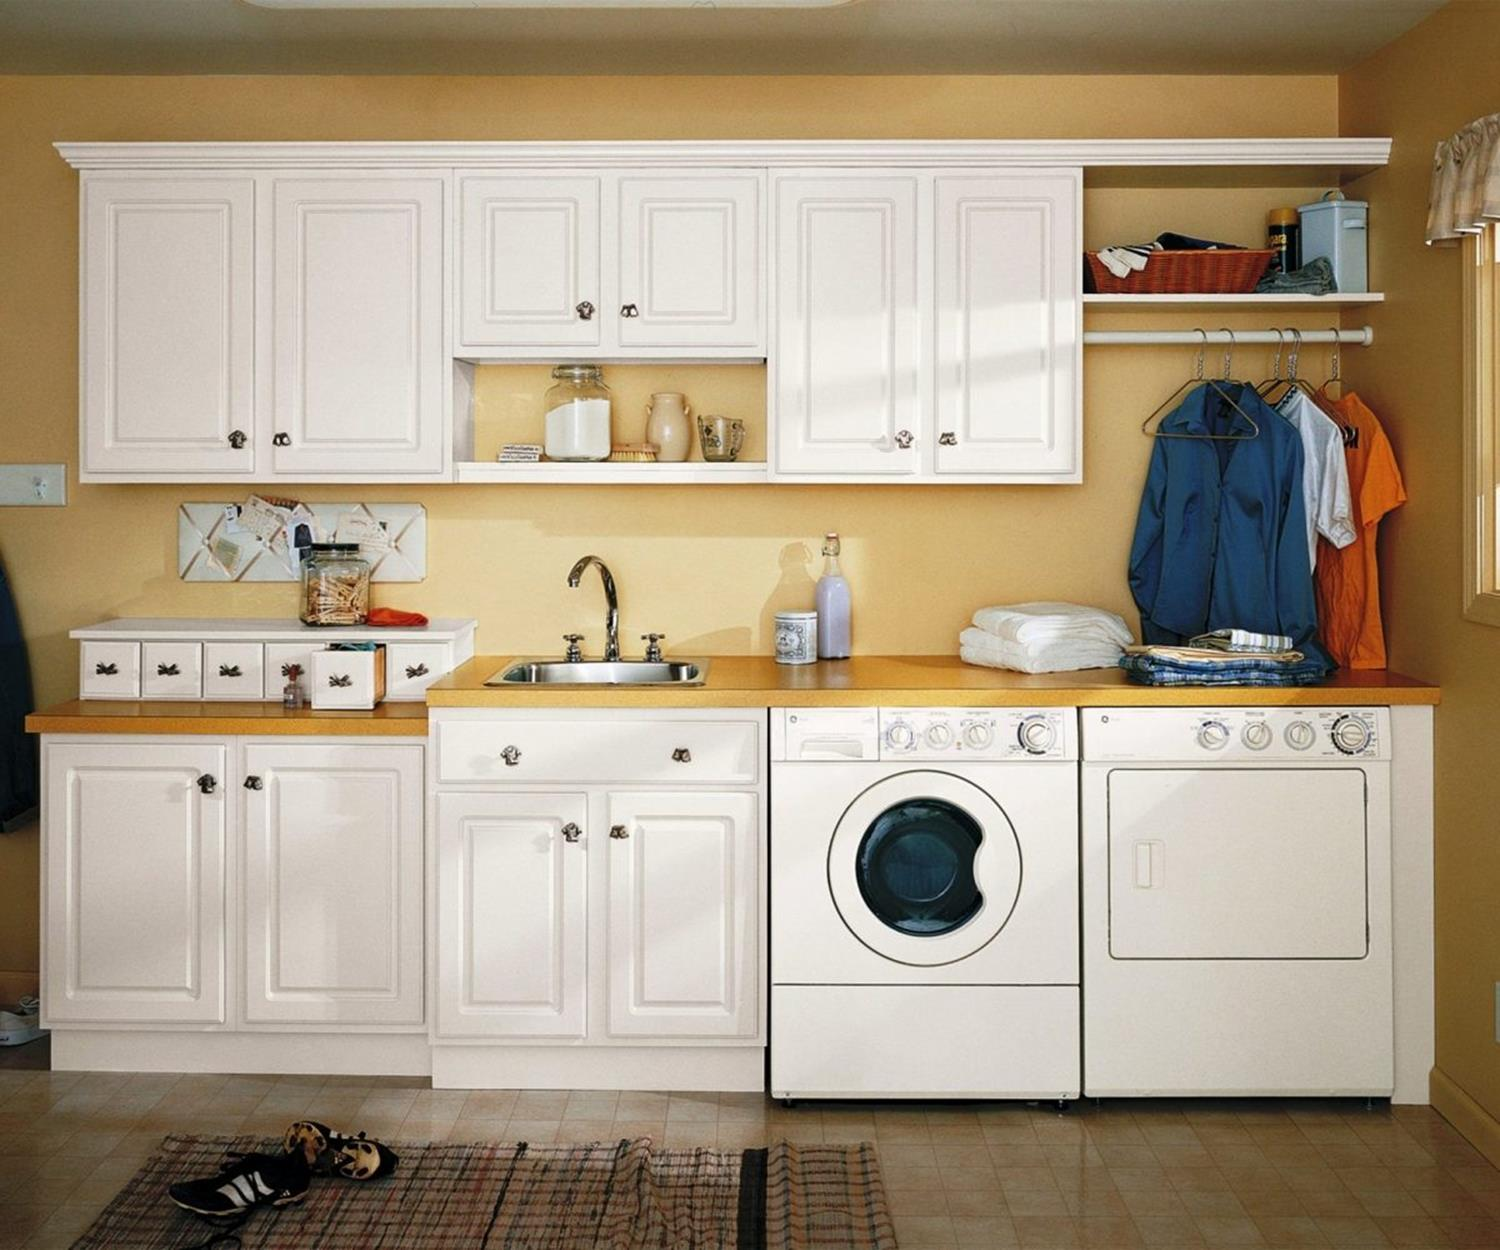 Best Cheap IKEA Cabinets Laundry Room Storage Ideas 30